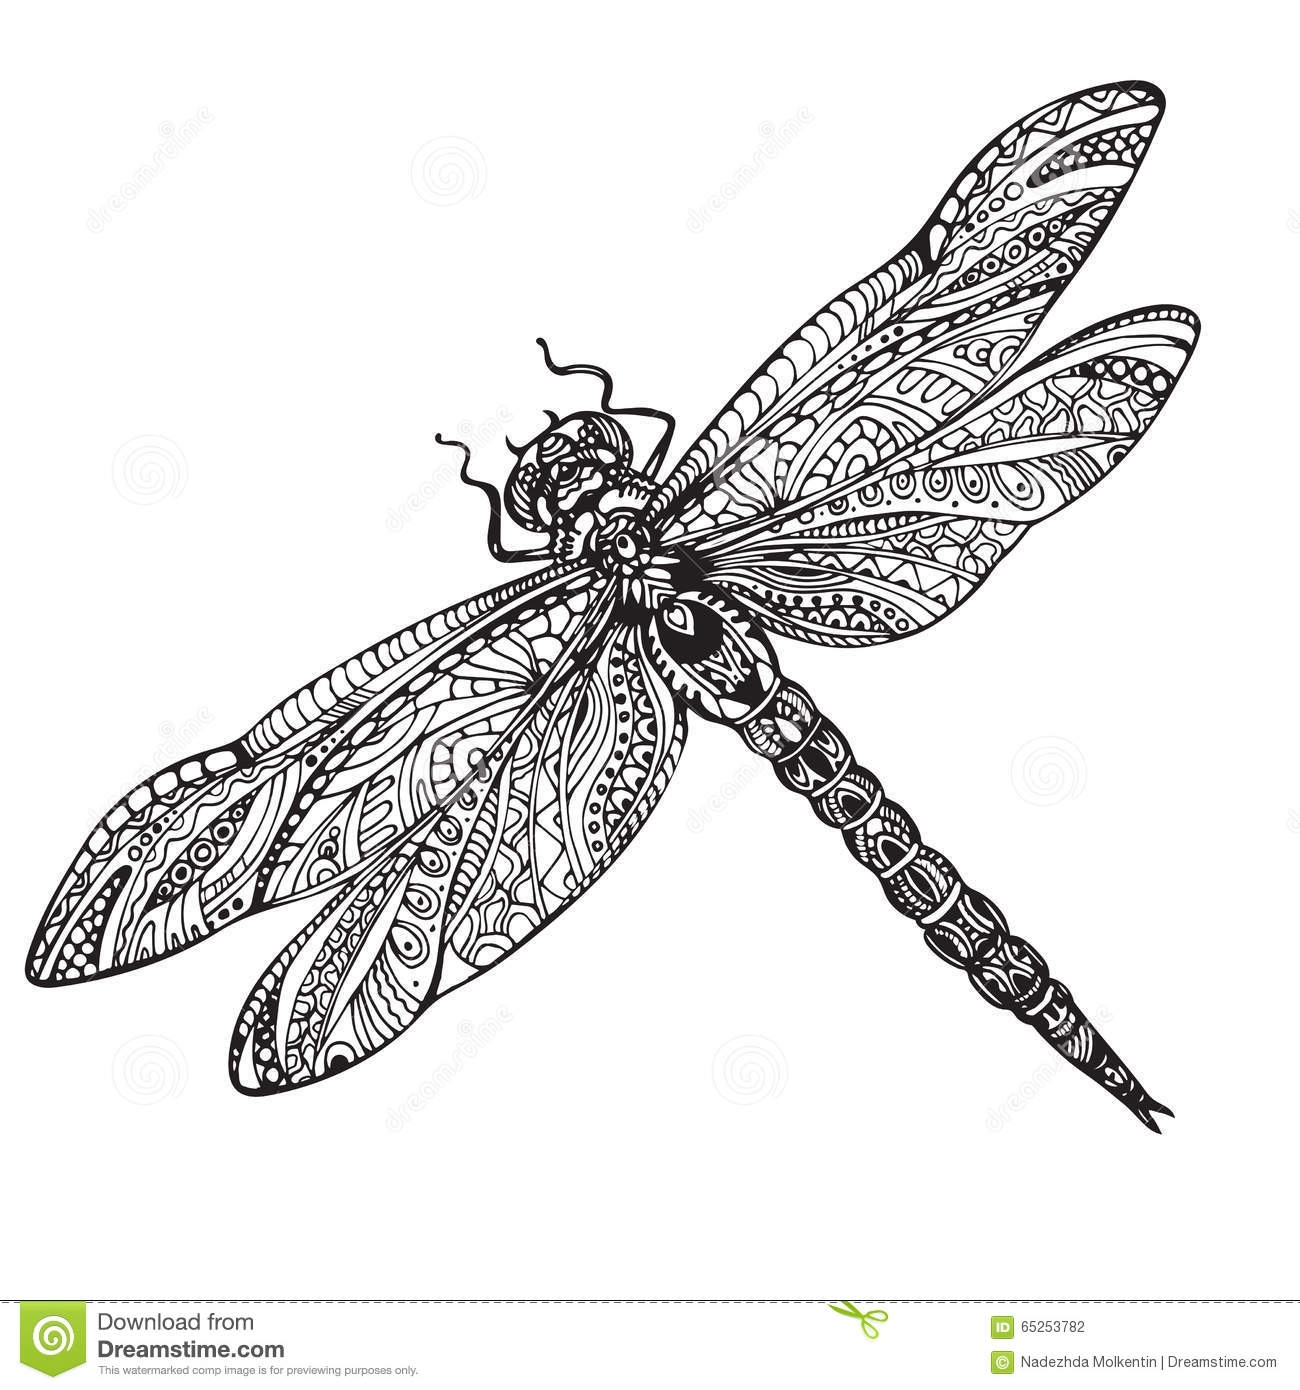 21 Dragonfly Coloring Page Compilation Free Coloring Pages